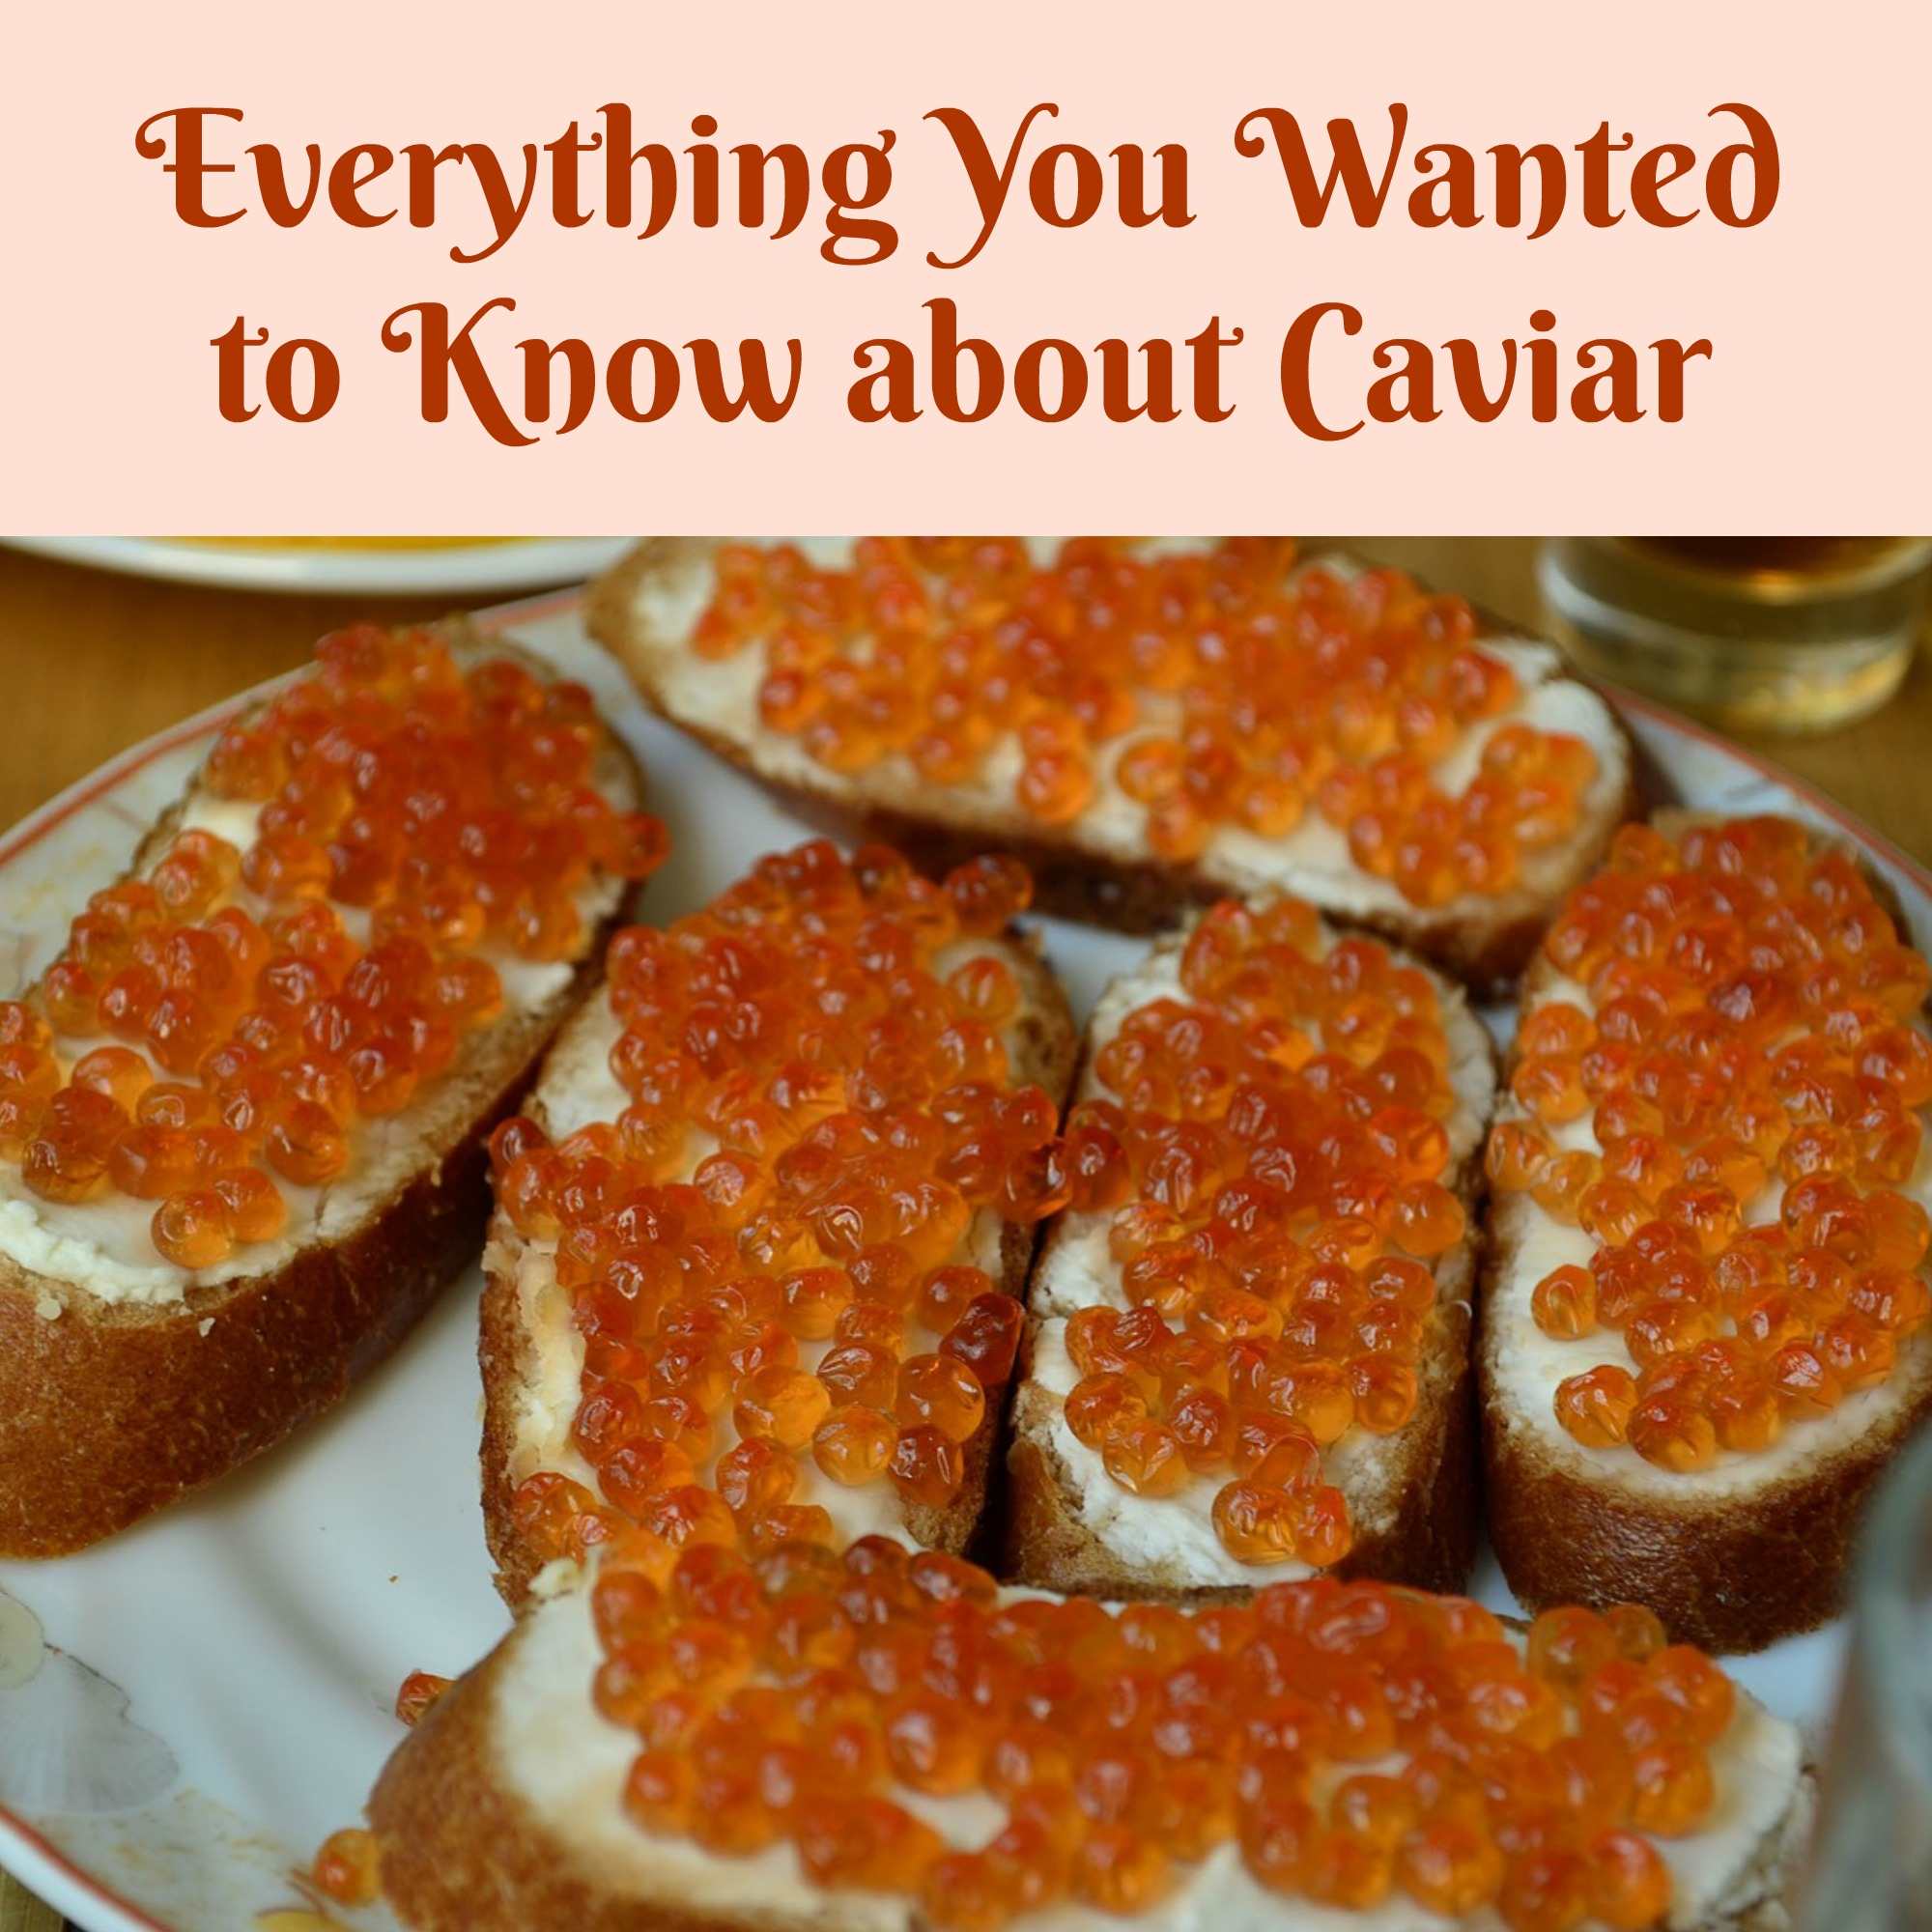 Everything You Wanted to Know about Caviar